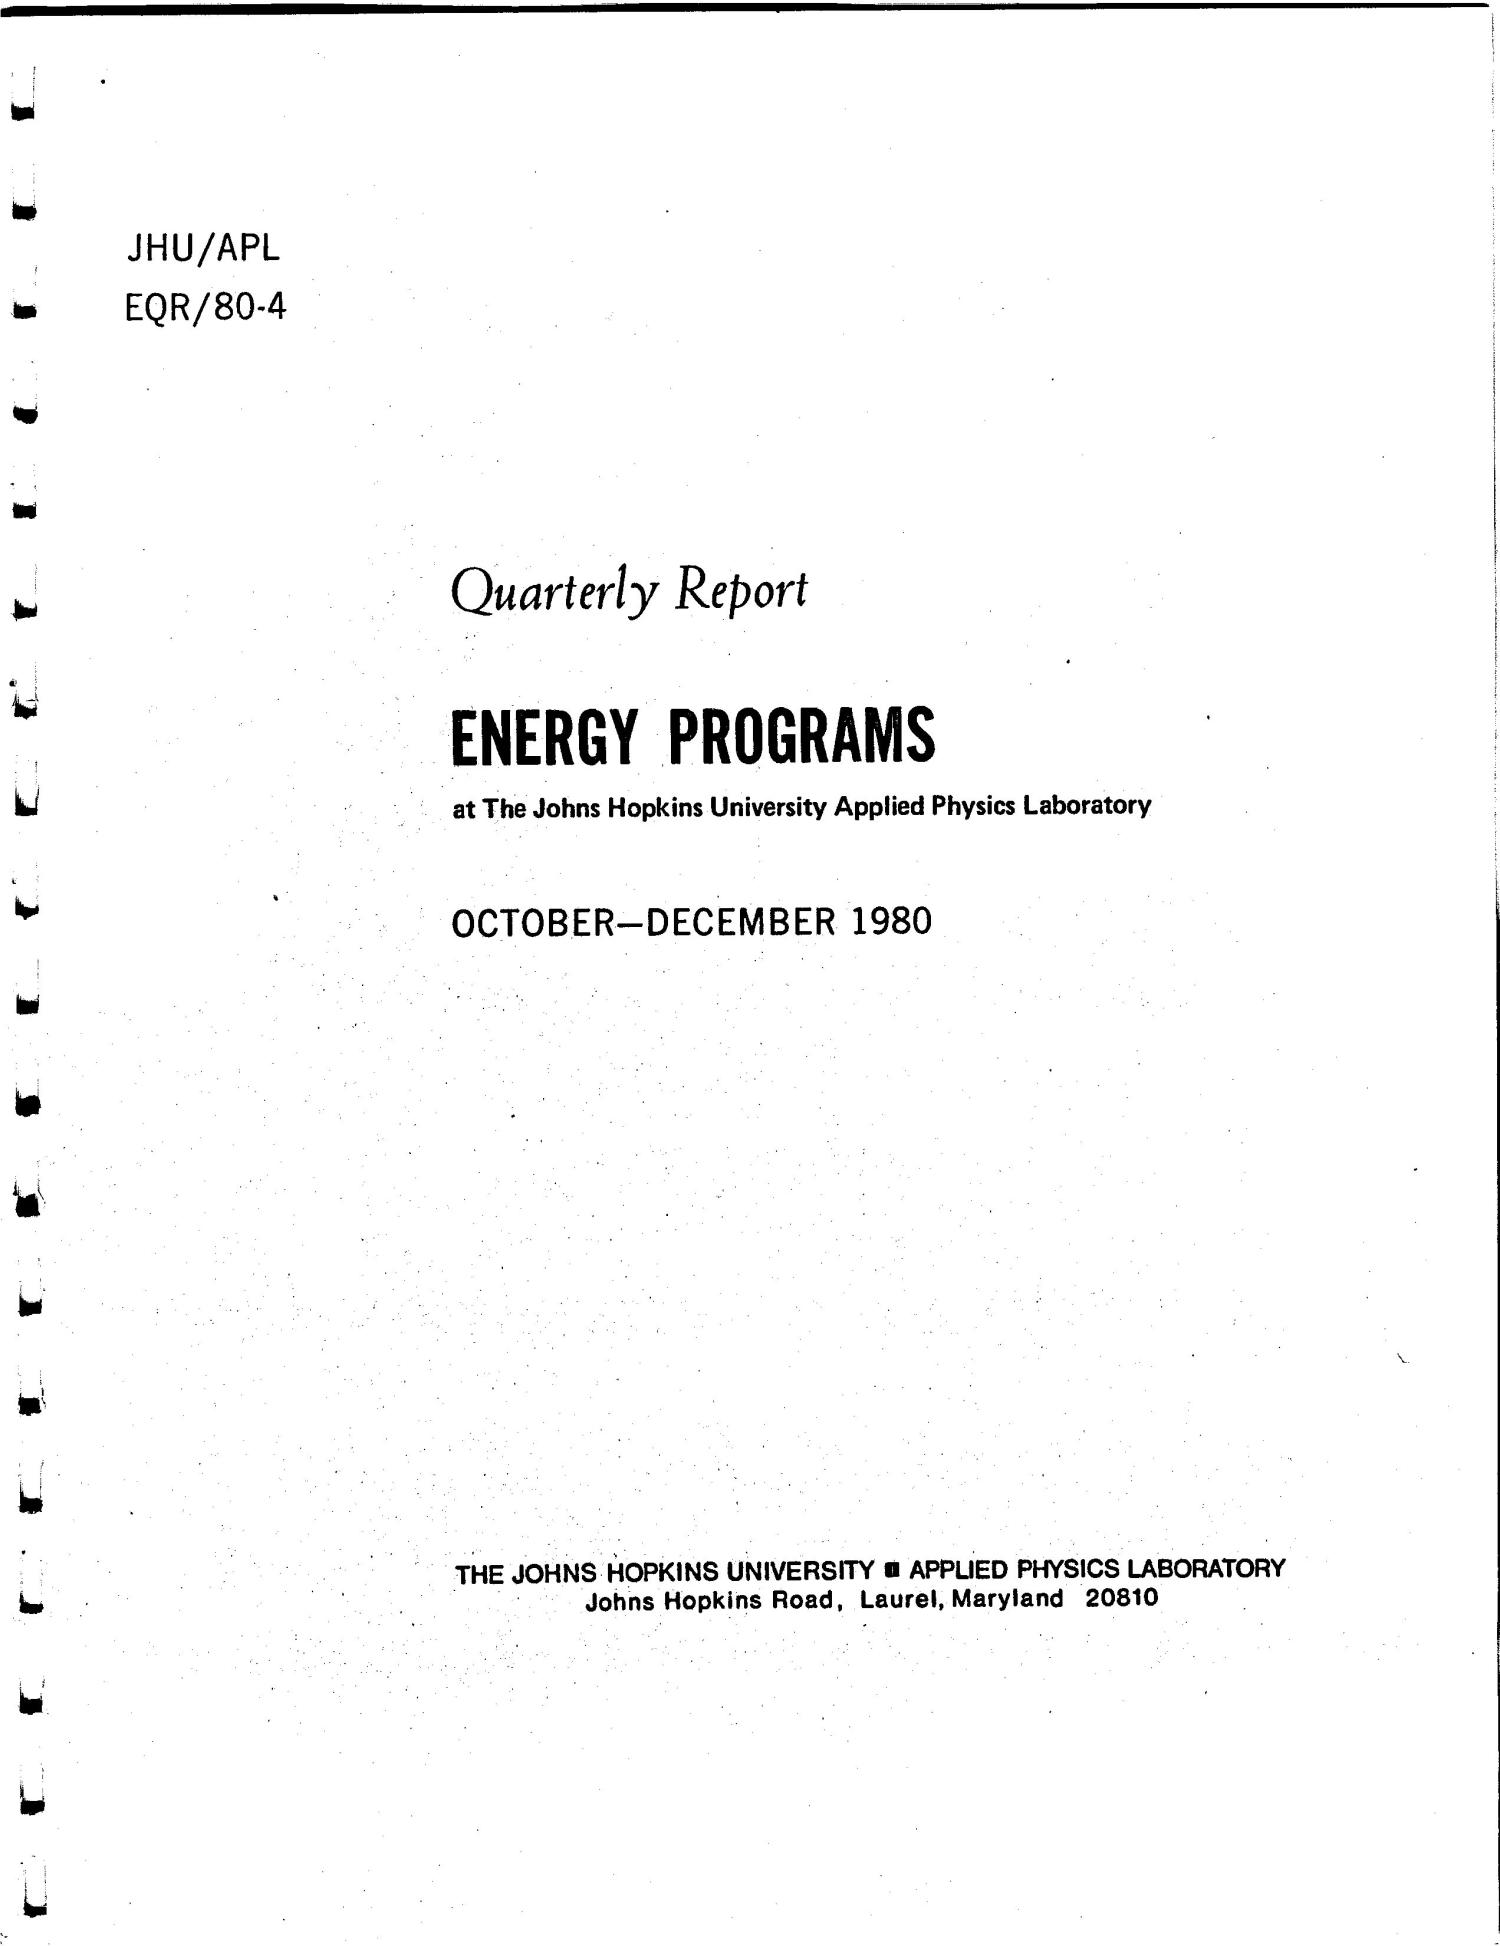 Energy Programs at the Johns Hopkins University Applied Physics Laboratory, Quarterly Report, October-December 1980                                                                                                      [Sequence #]: 4 of 57